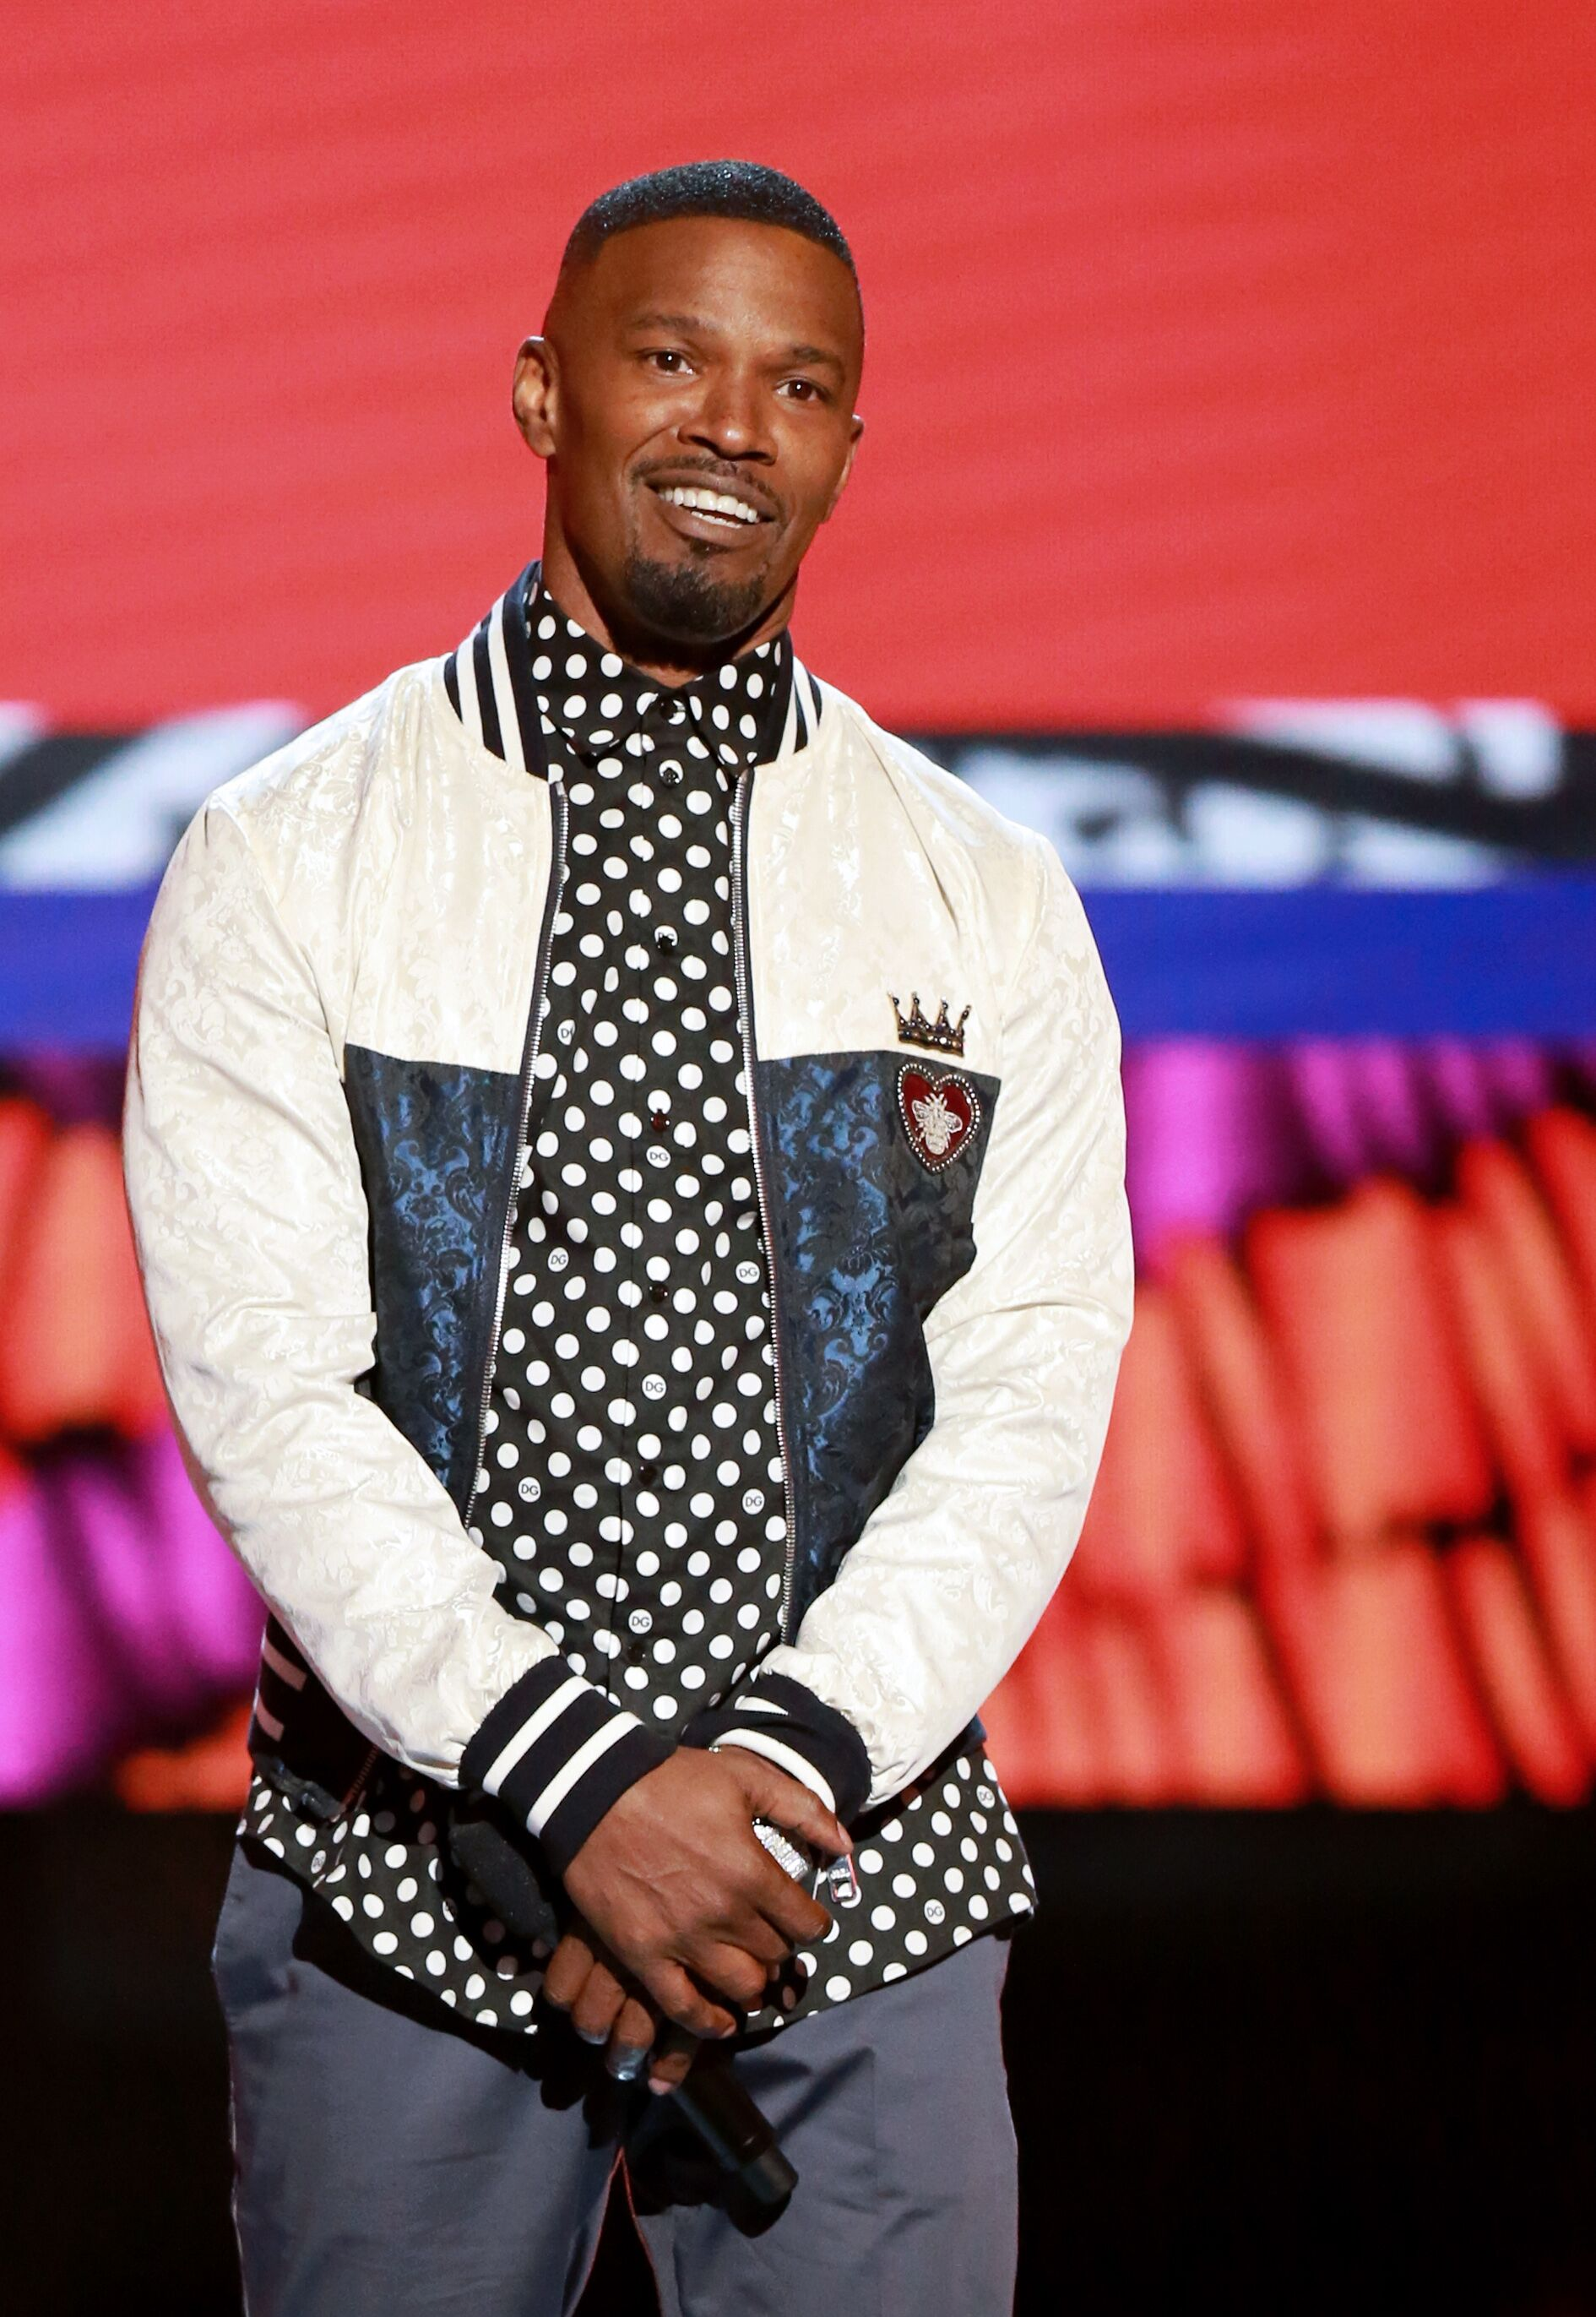 Jamie Foxx speaks onstage at the 2018 BET Awards. | Source: Getty Images